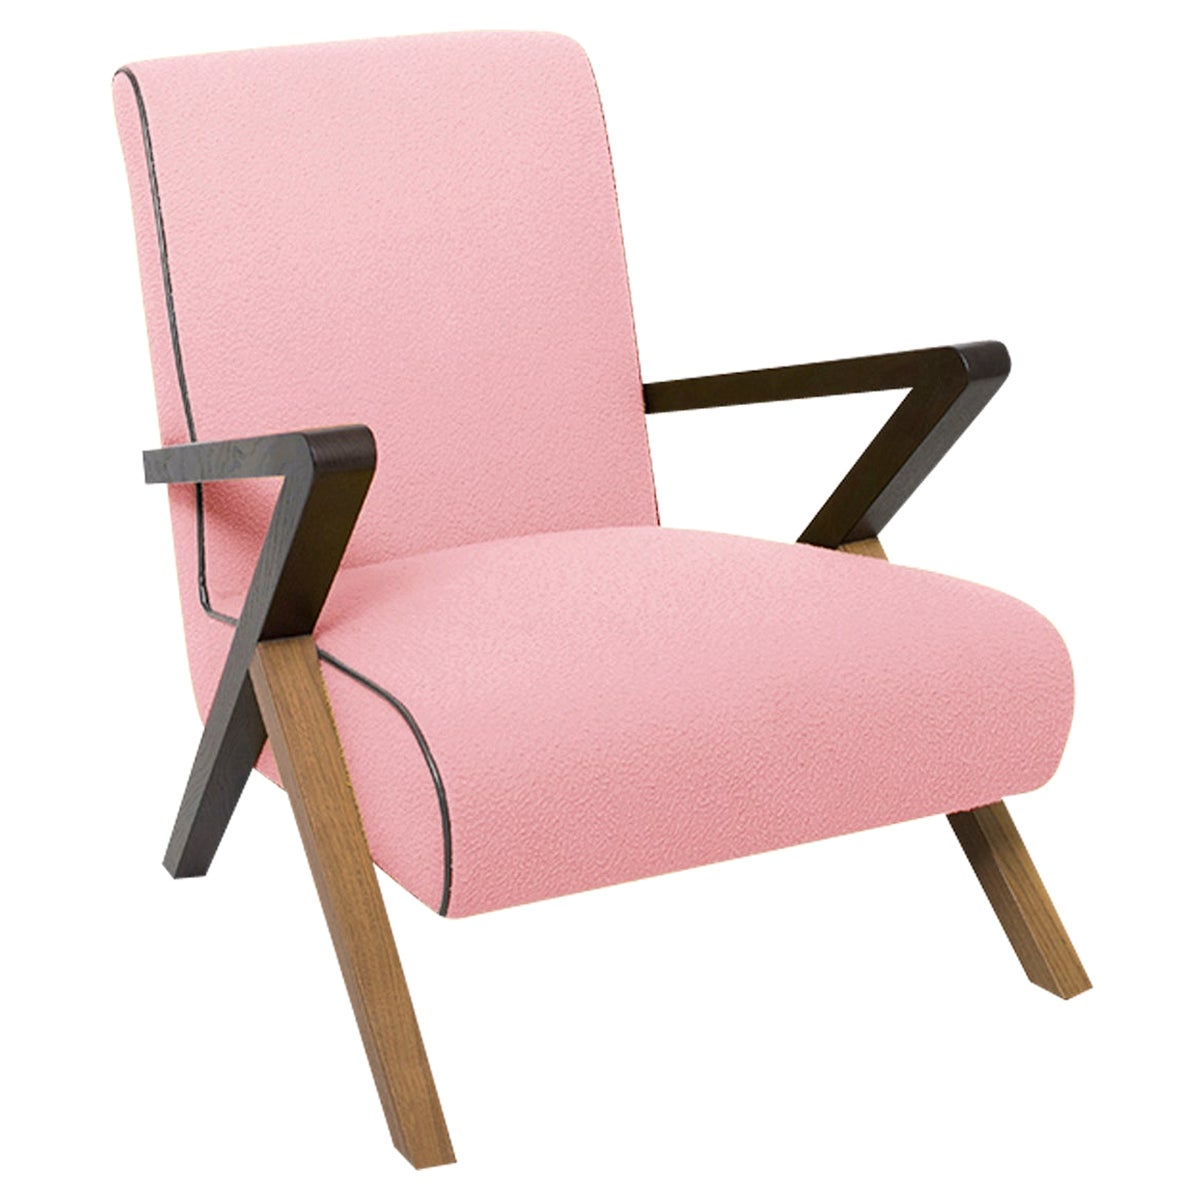 Fiftypop, Pink Armchair Inspired to the 1950s, Used for Exhibition